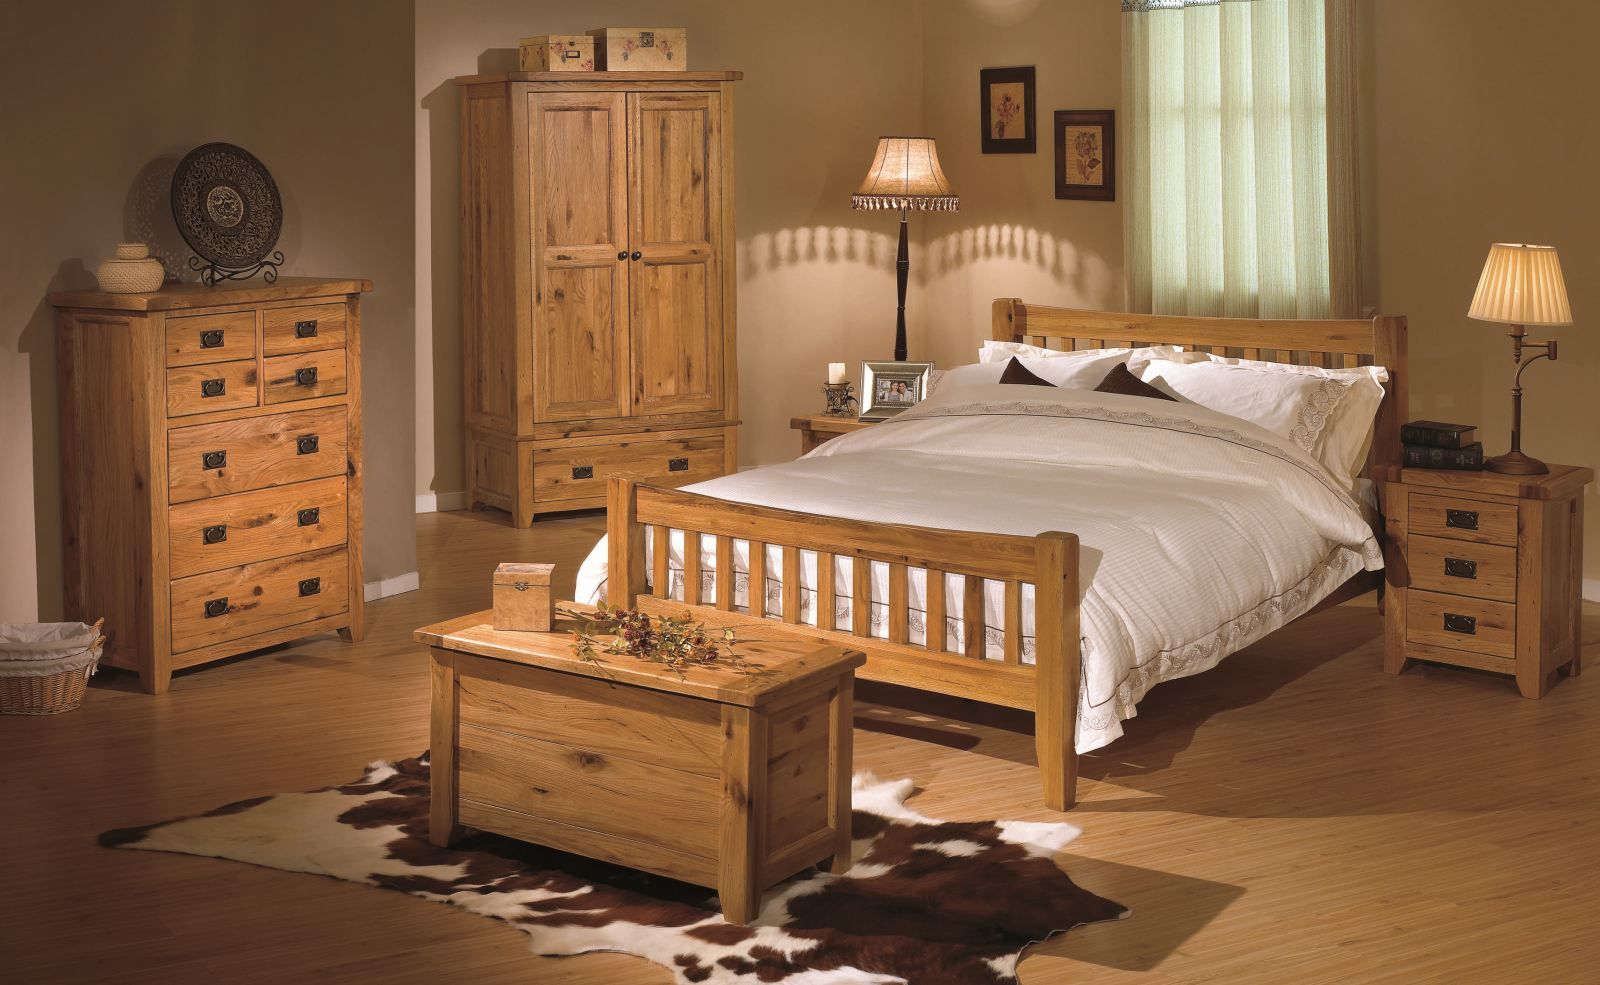 Highly sprung trade rustic oak bedroom furniture beds at trade